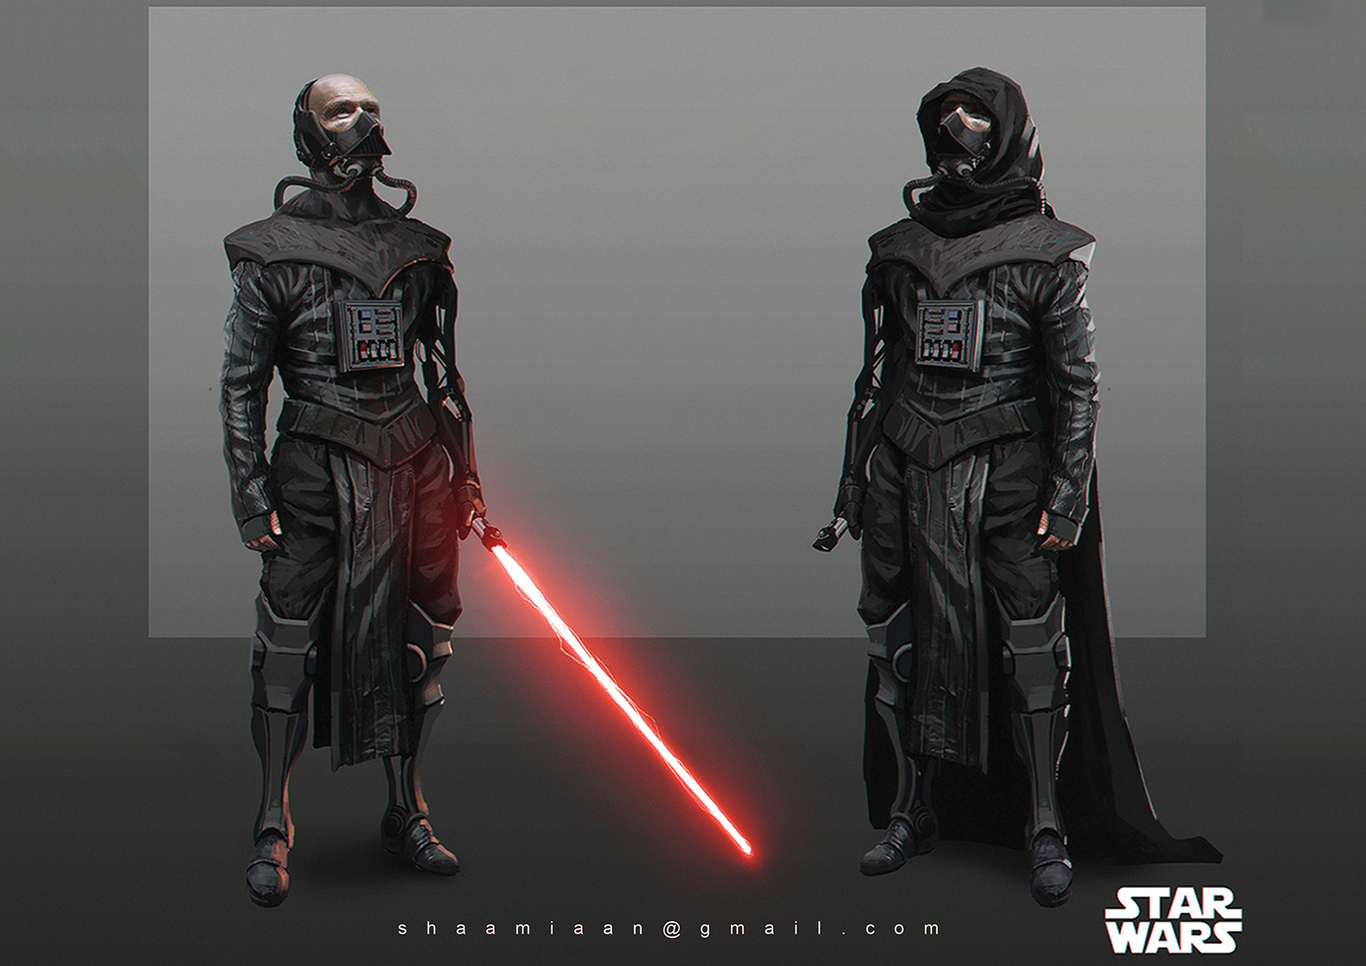 lukaszpoduch-darth-vader-redesign-1-a667